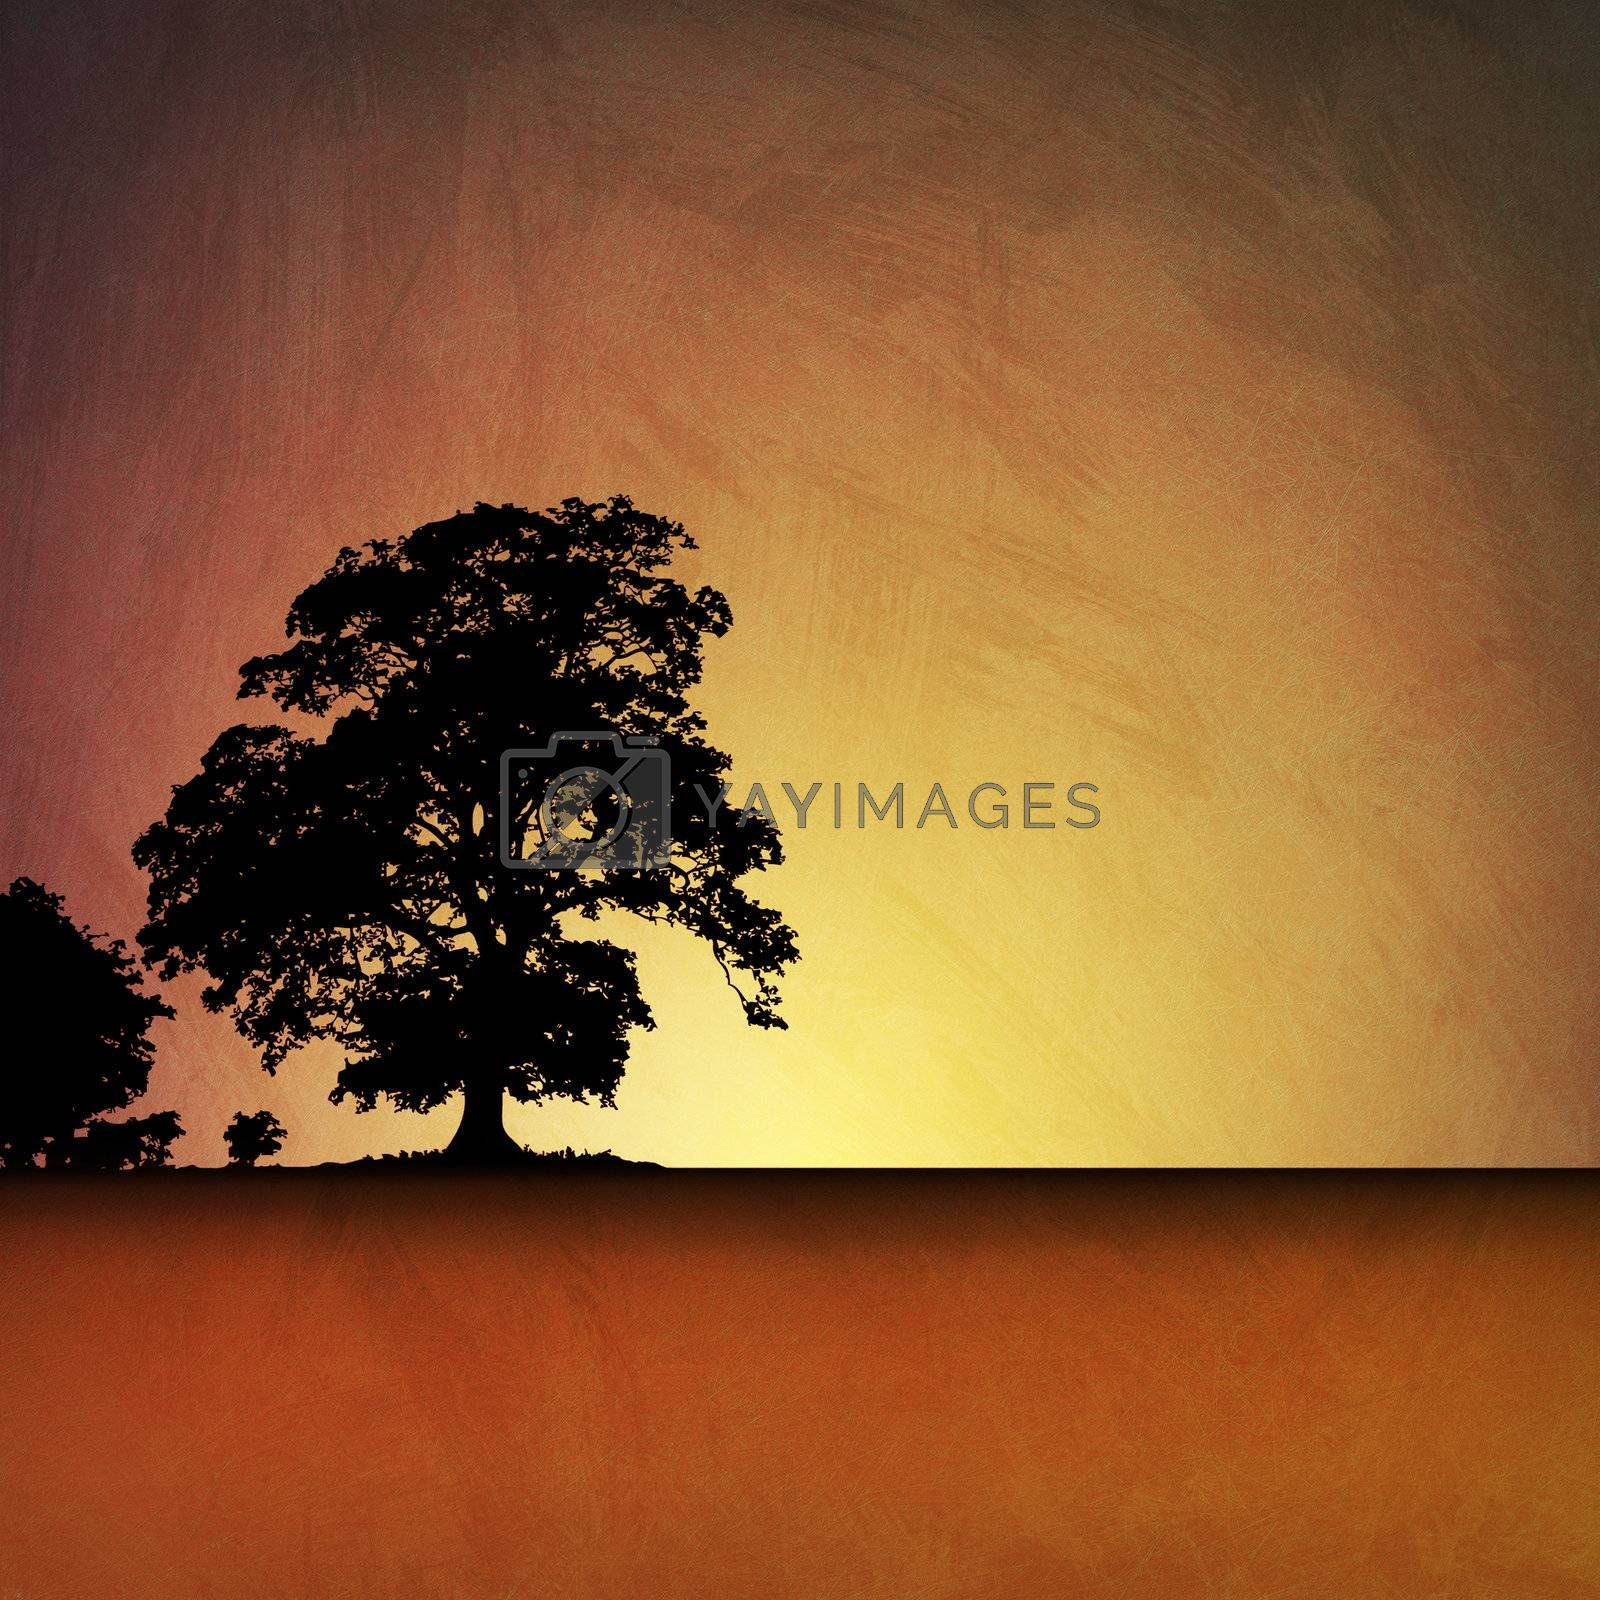 An Artistic Vintage Grunge Illustration Landscape with a Big Tree